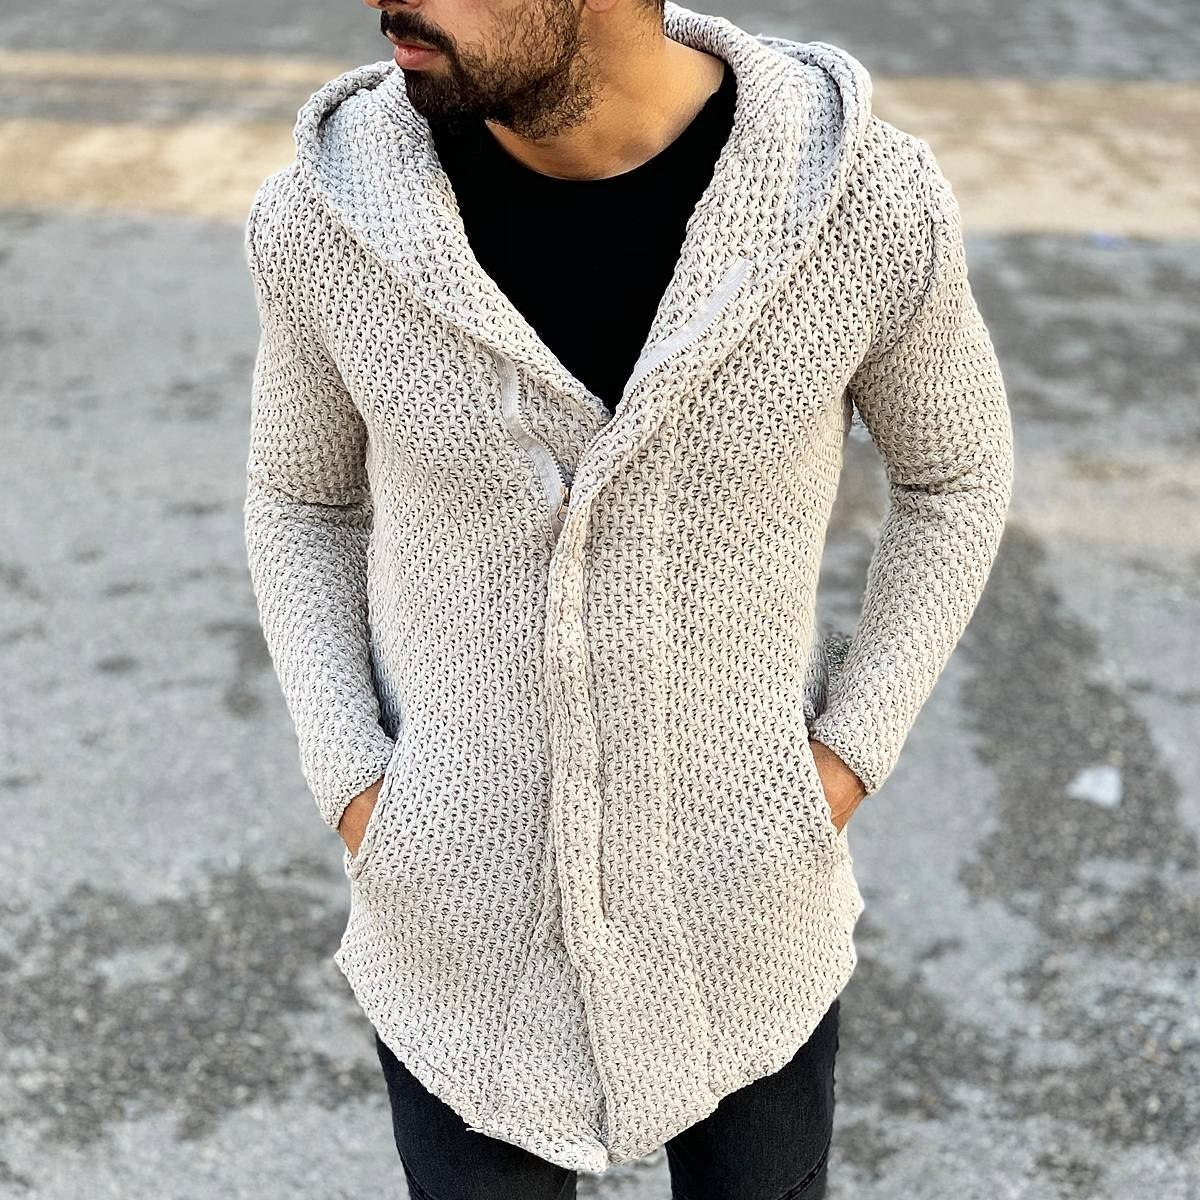 Classic Hooded Cardigan Jacket in White